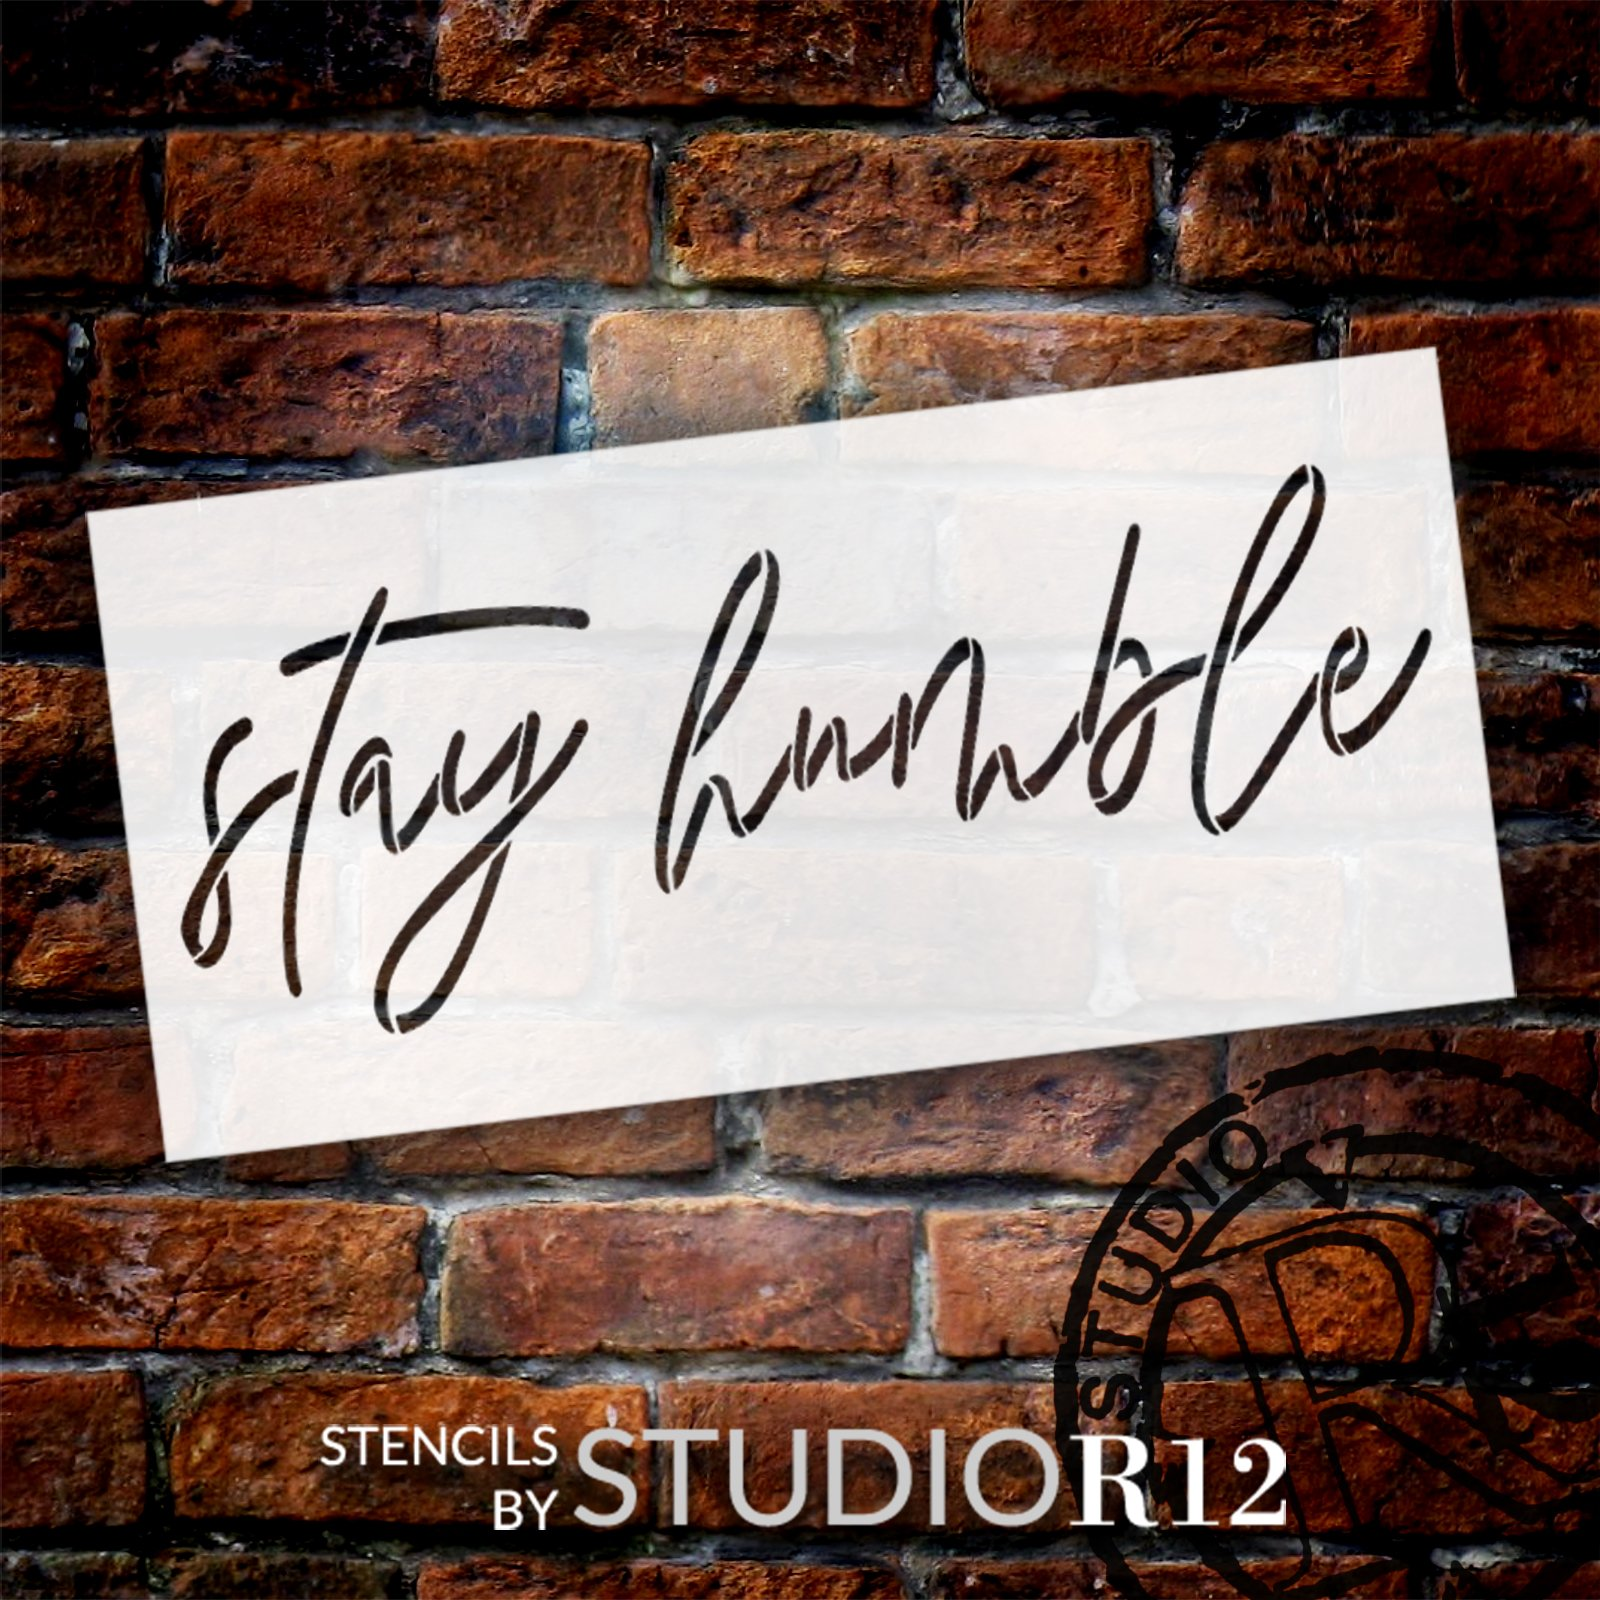 Stay Humble Cursive Script Stencil by StudioR12   DIY Inspirational Quote Home Decor   Craft & Paint Wood Sign   Reusable Mylar Template   Select Size